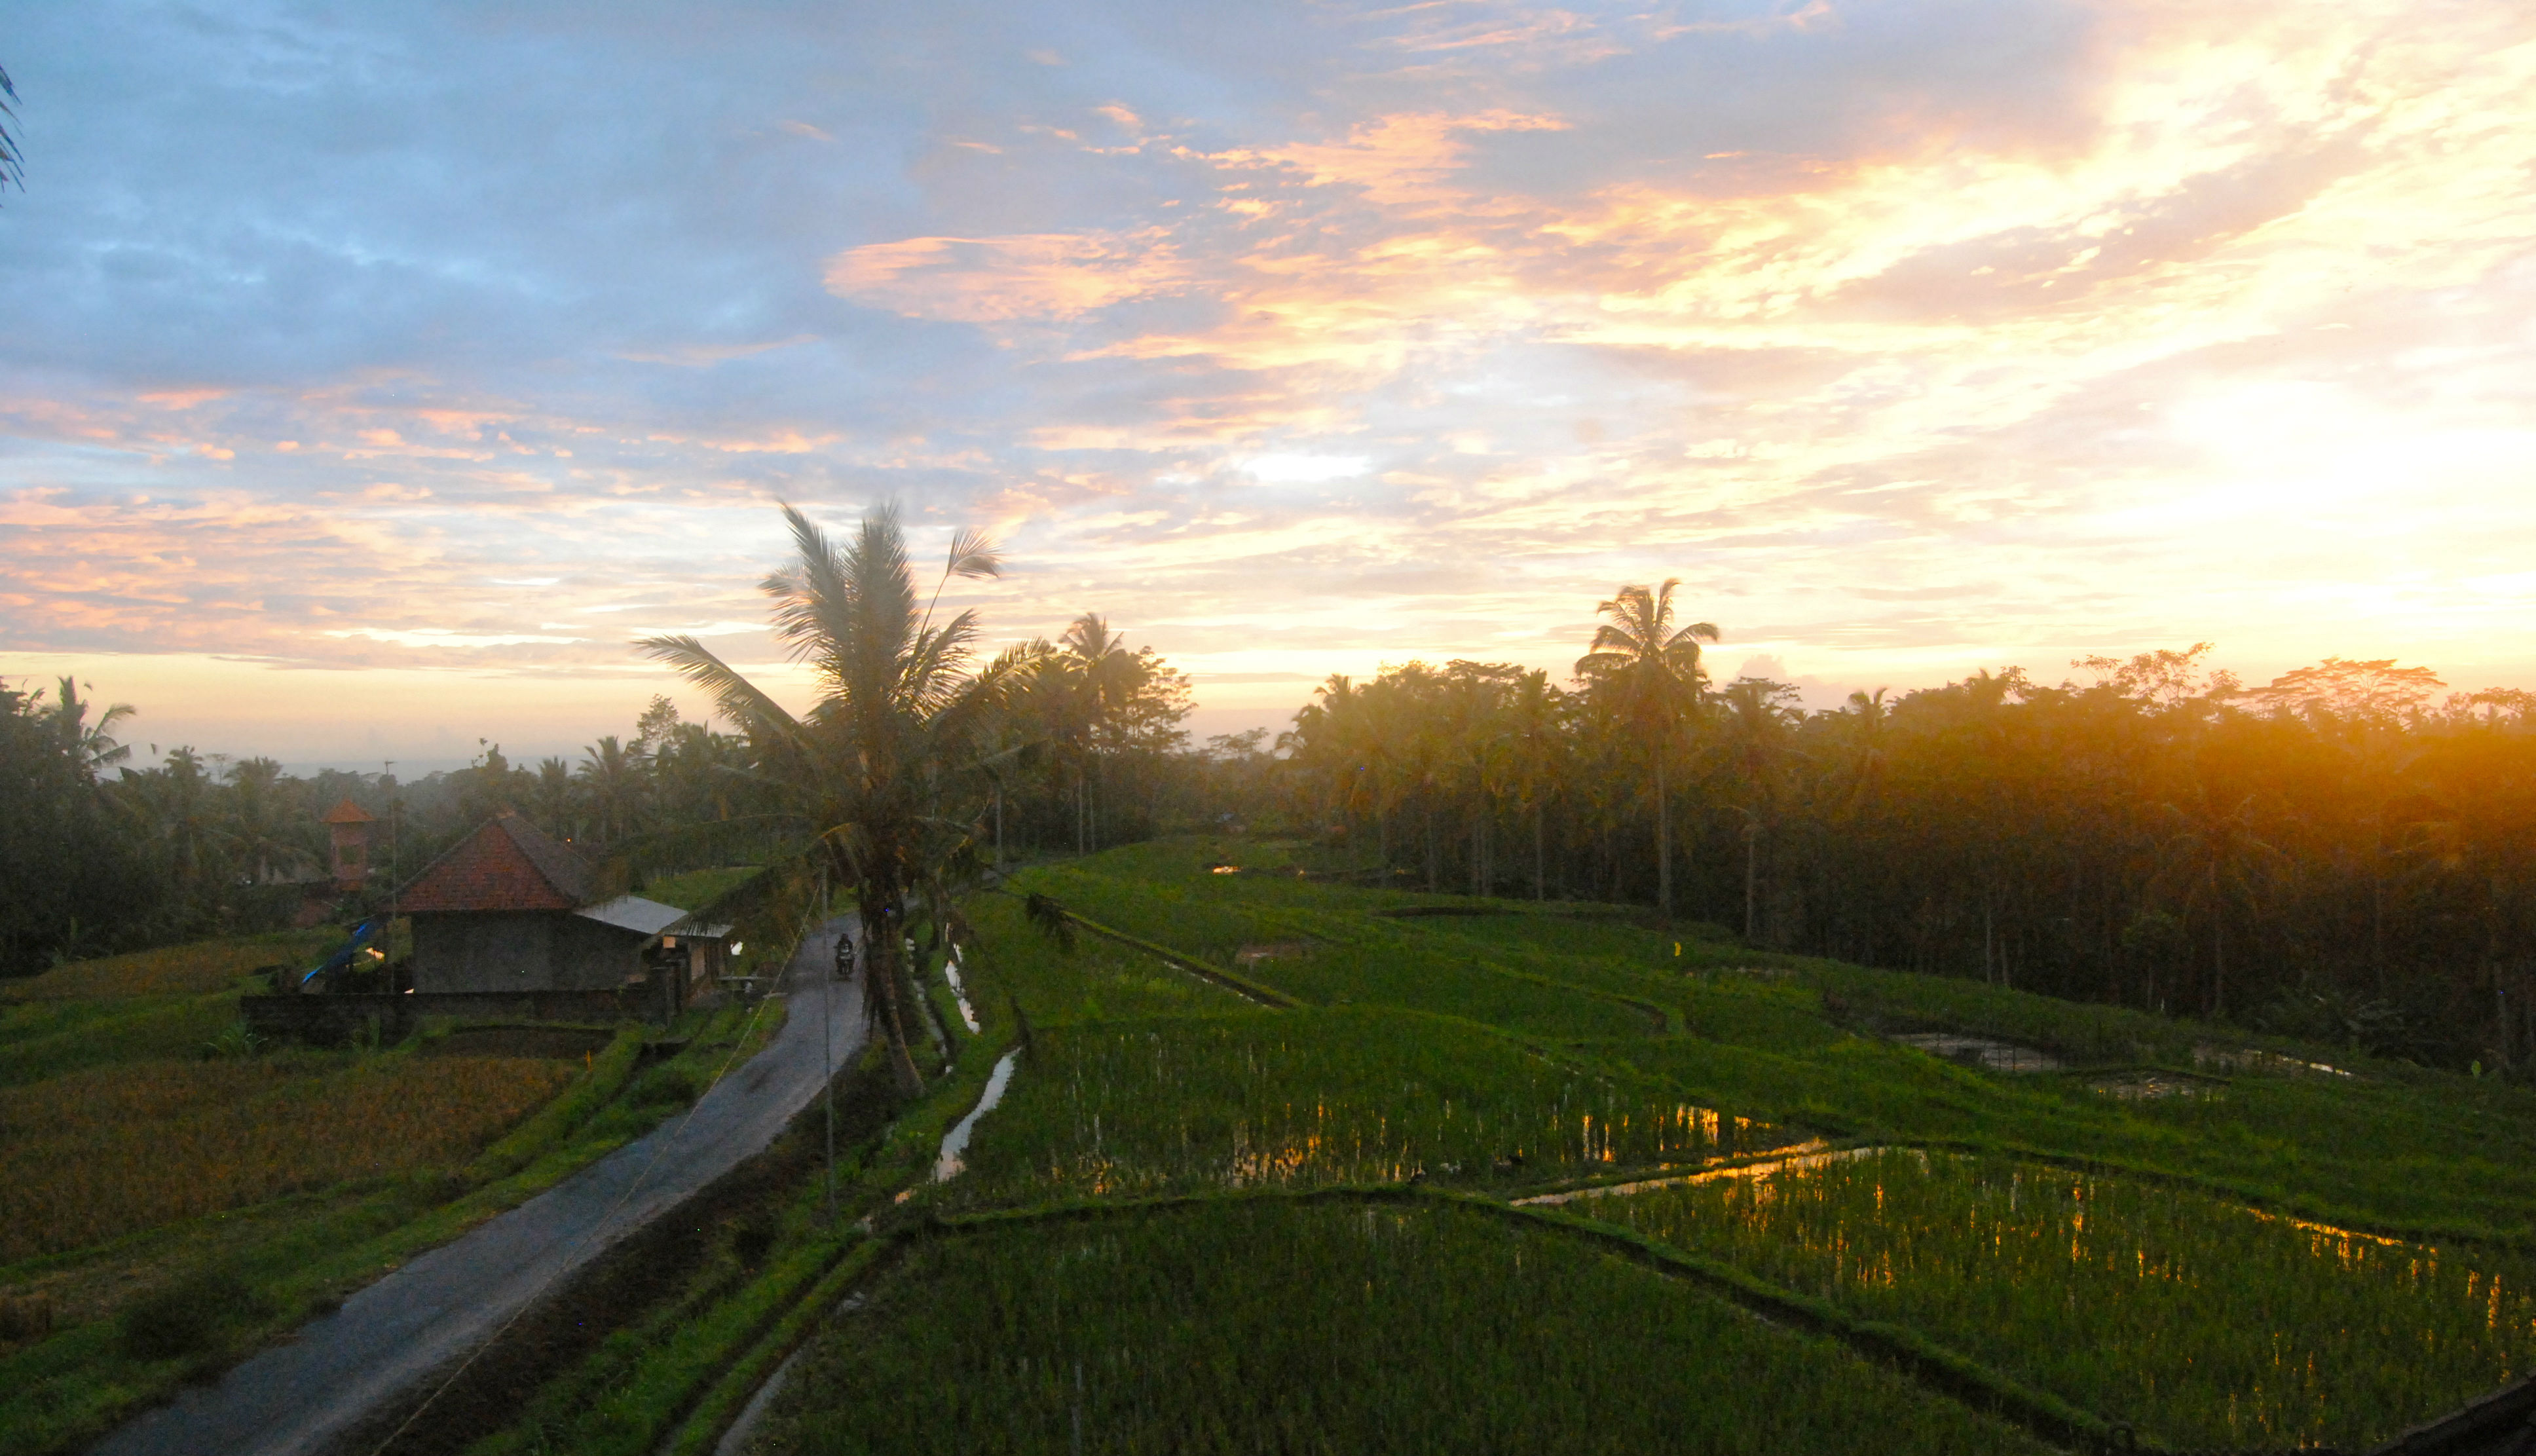 Ubud, Bali: More than just 'Eat, Pray, Love'